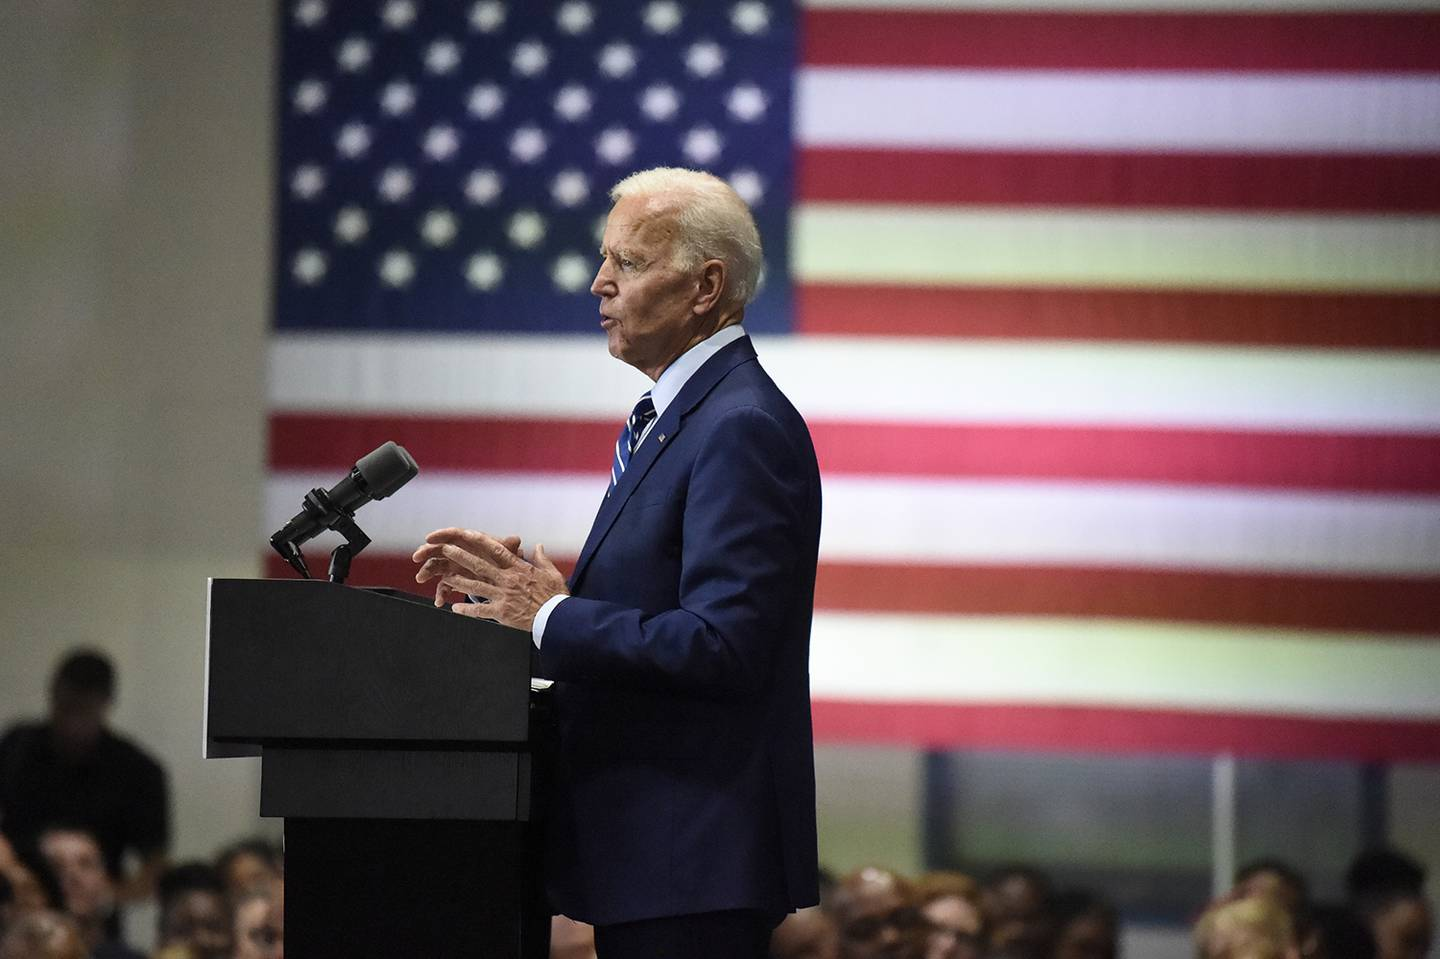 Democratic presidential candidate and former vice President Joe Biden speaks at a campaign event in Sumter, S.C, on July 6, 2019.